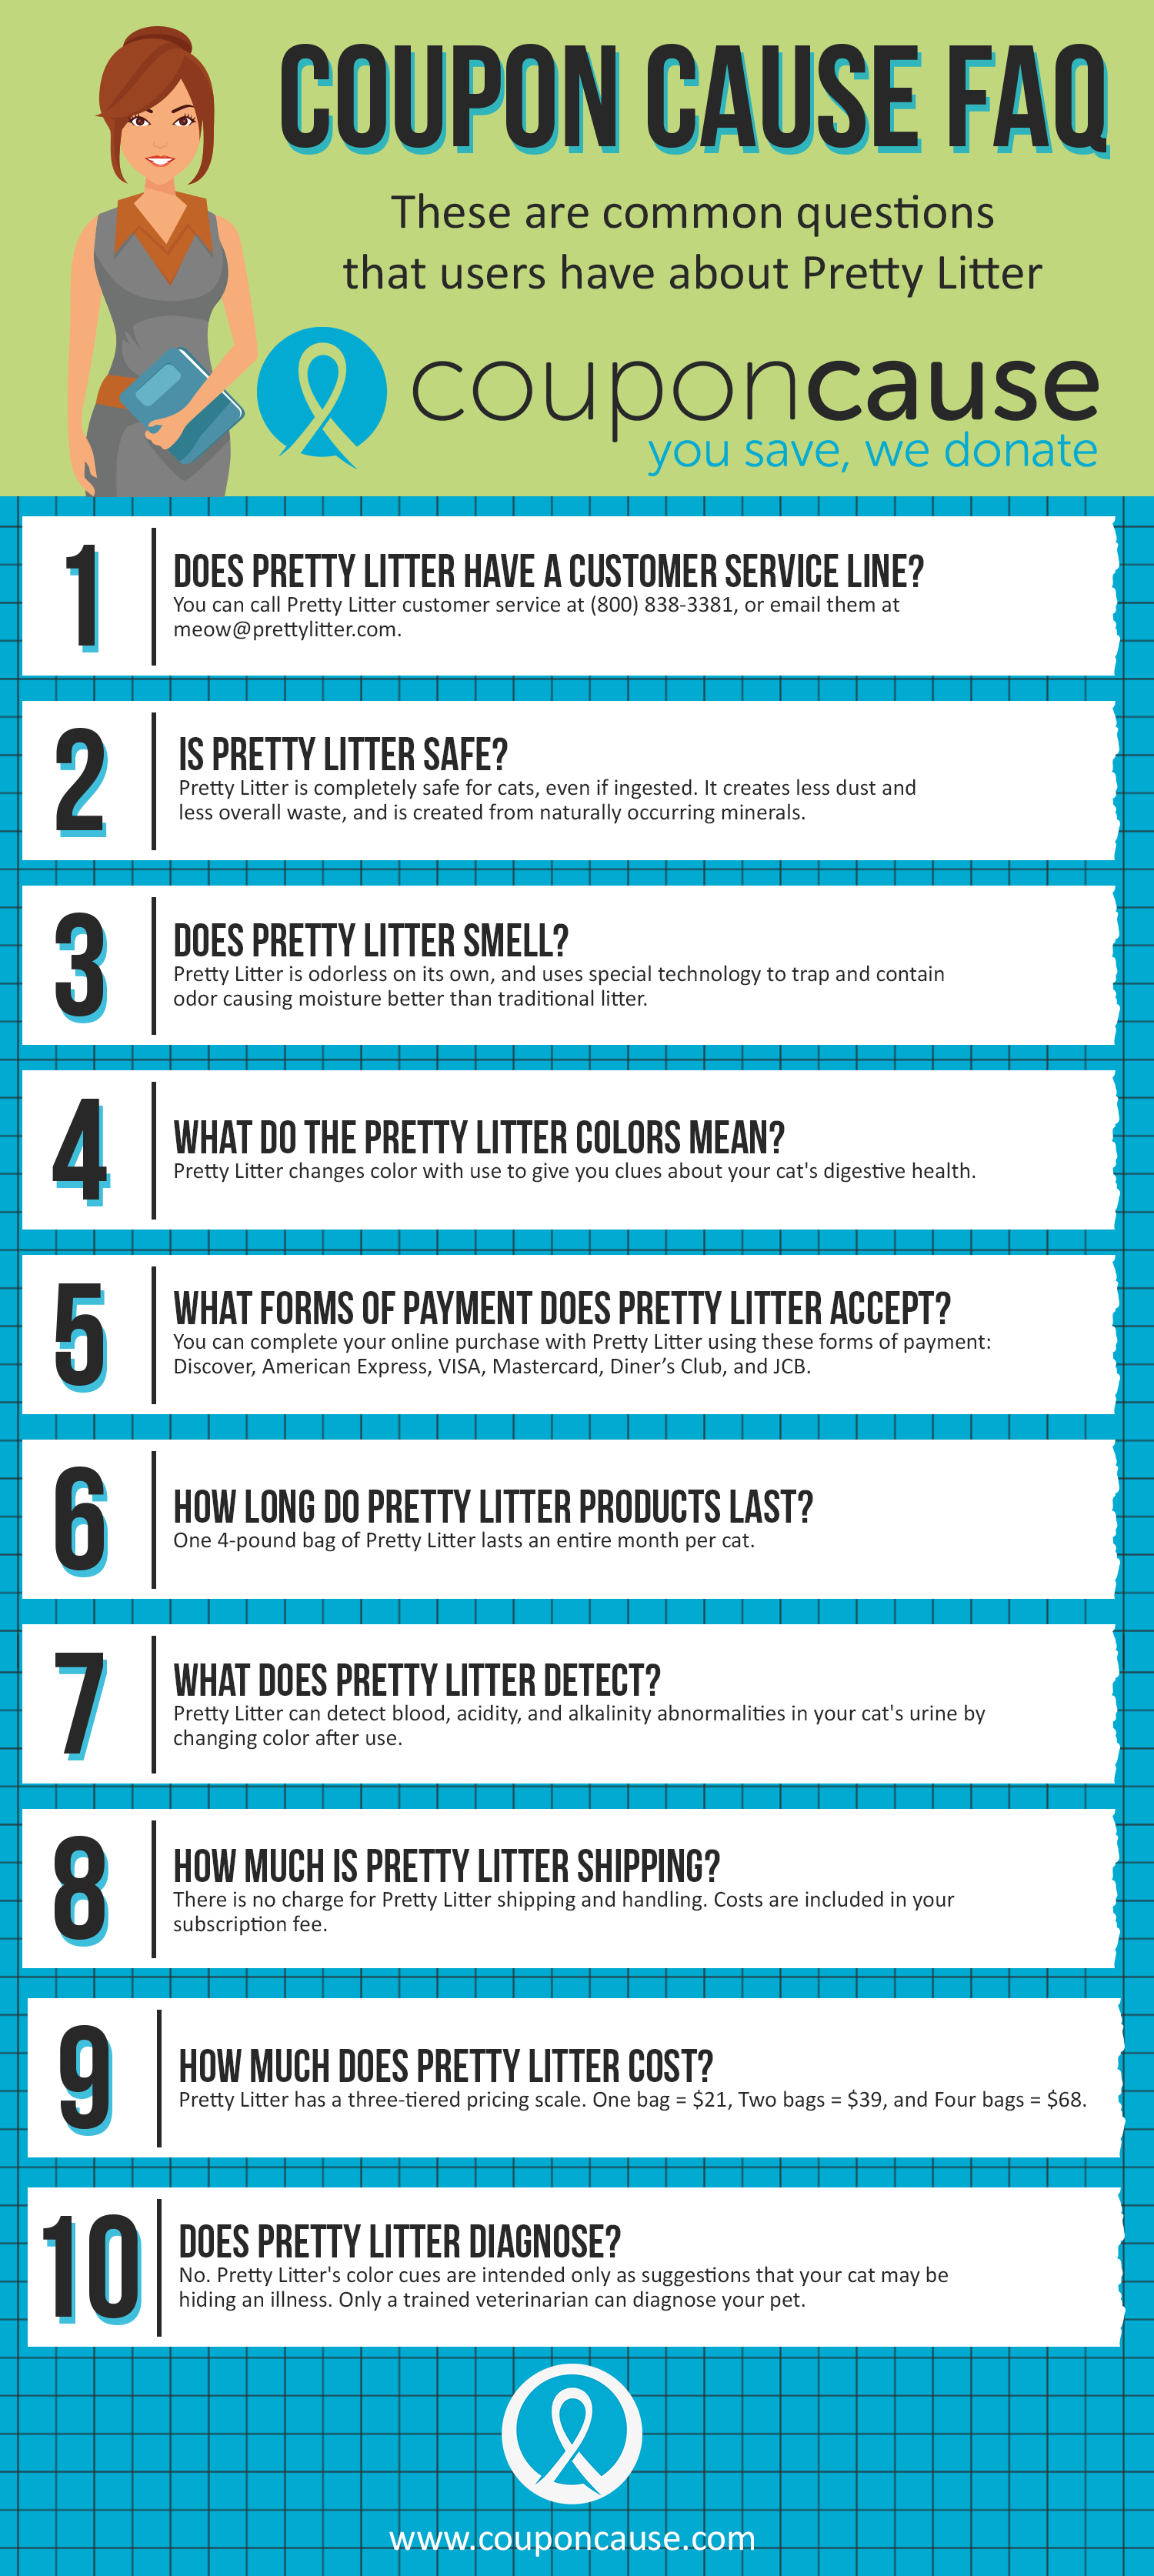 Pretty Litter Coupon Cause FAQ (C.C. FAQ)